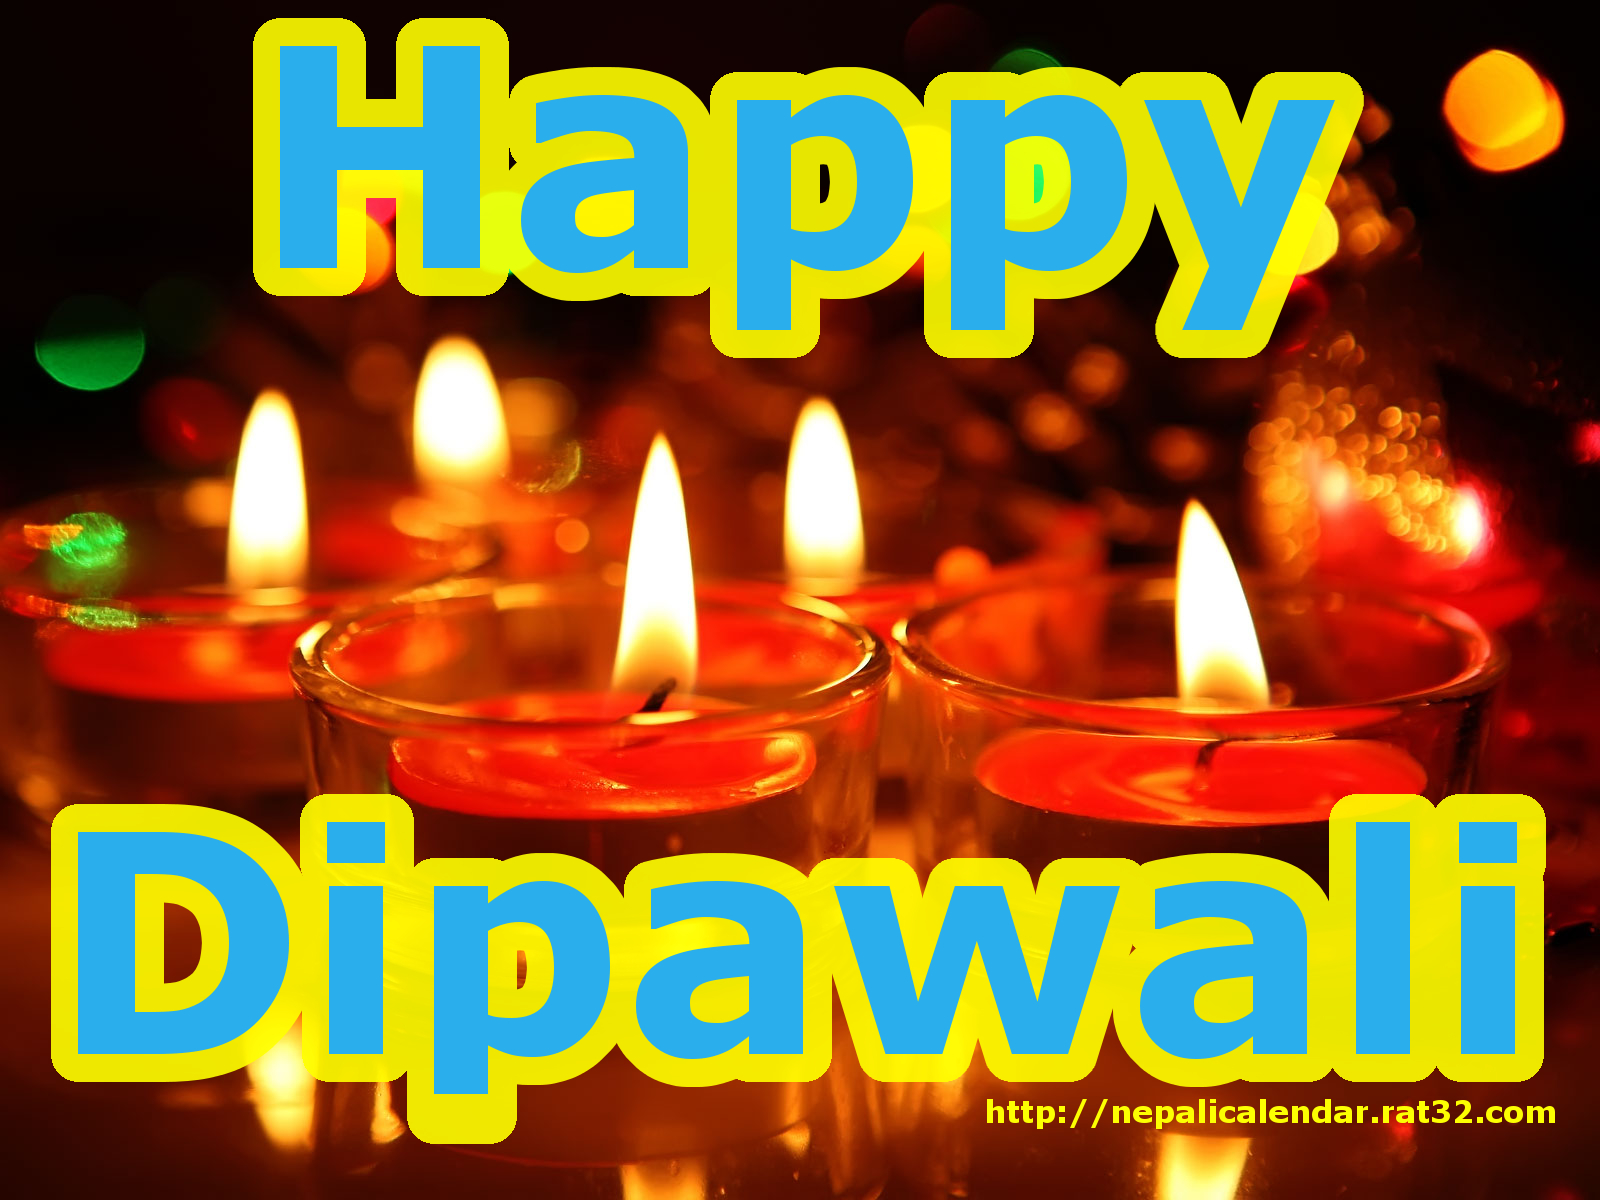 Nepali Calendar Wallpaper : Happy tihar cards ecards deepawali